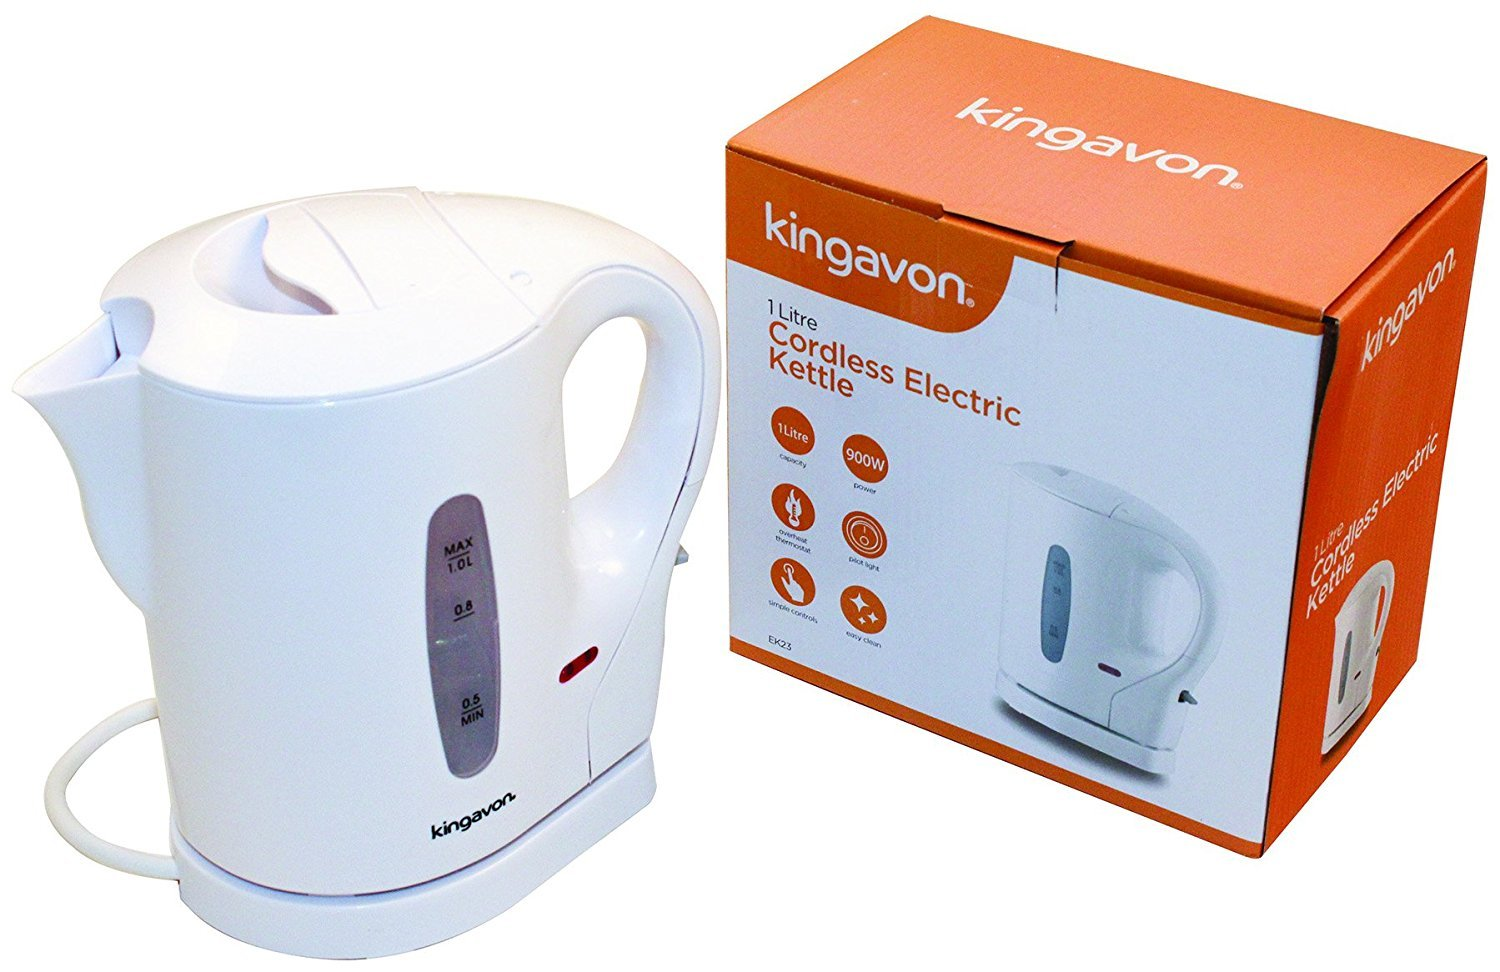 KINGAVON Cordless Kettle, 1 Litre, 900 W, White [Energy Class A] UKASNHKTN10696